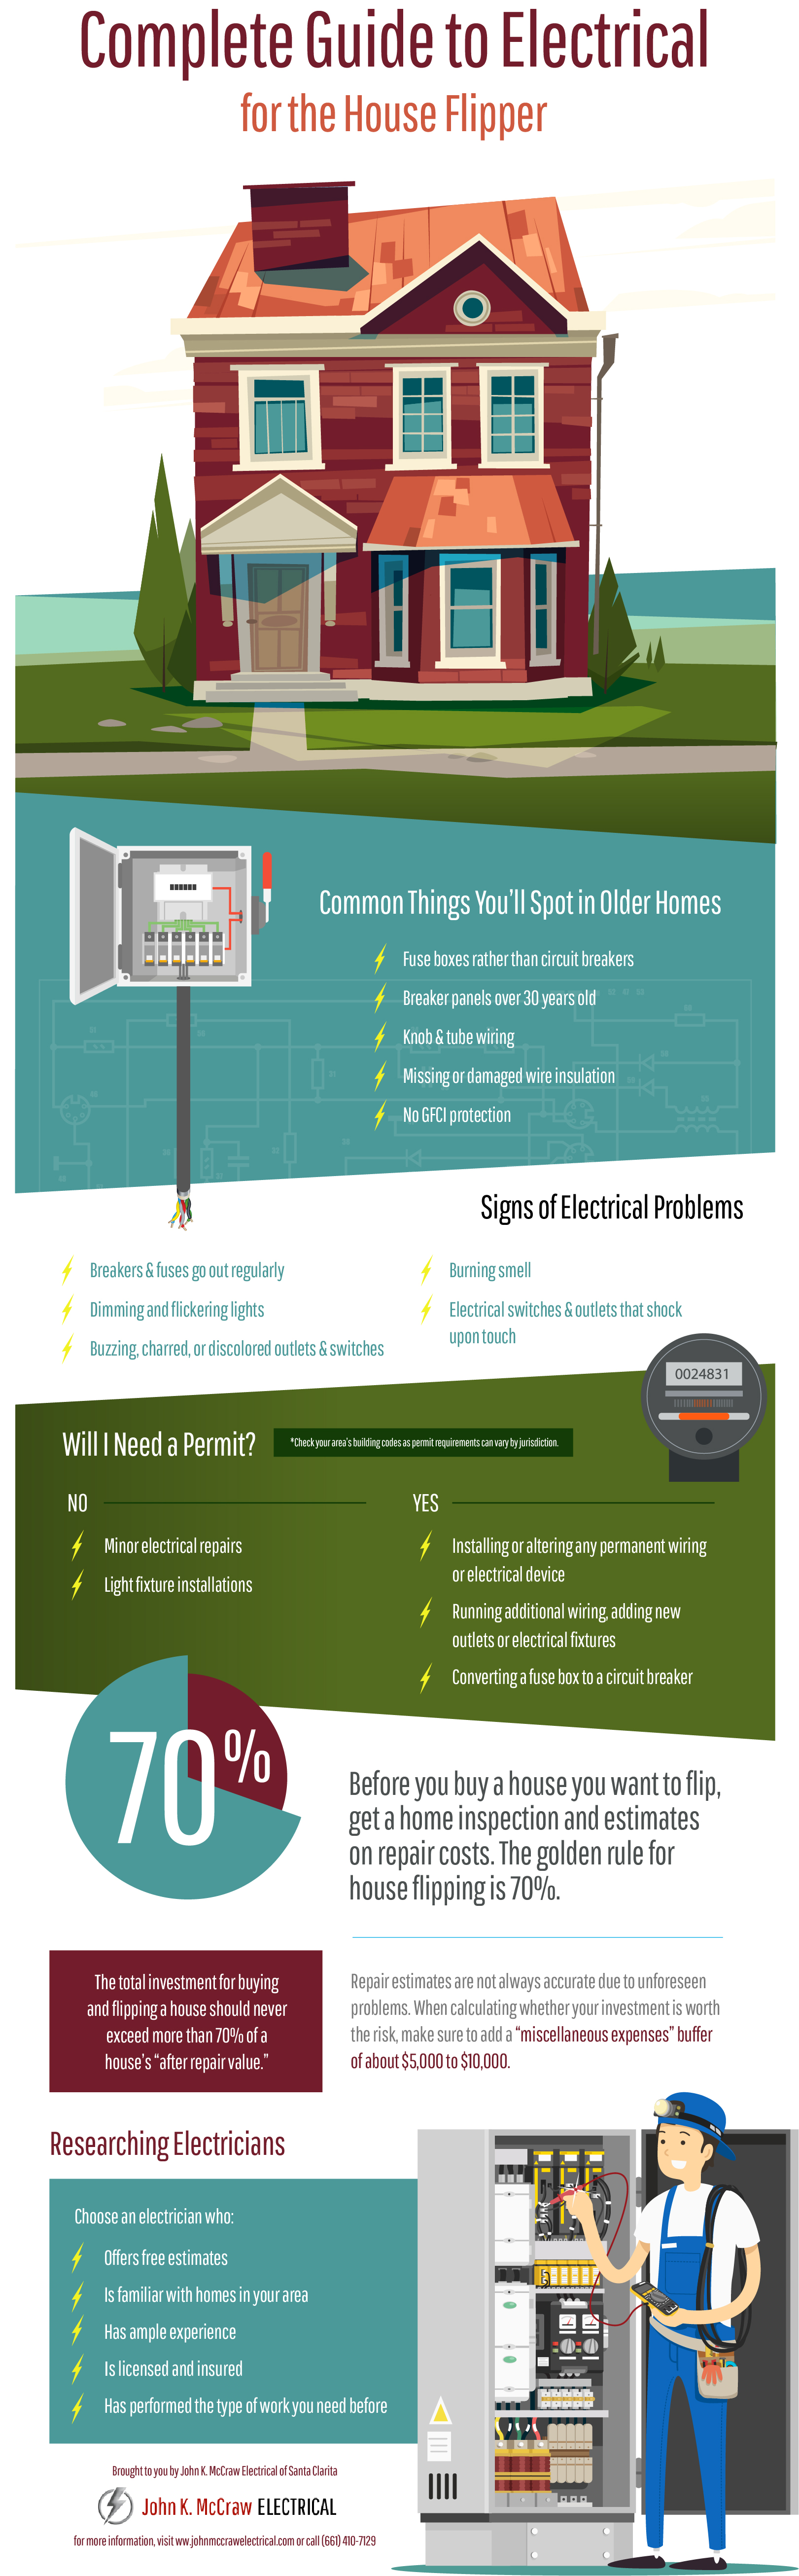 Complete Guide to #Electrical for the #House #Flipper - DAL WEB Do ...